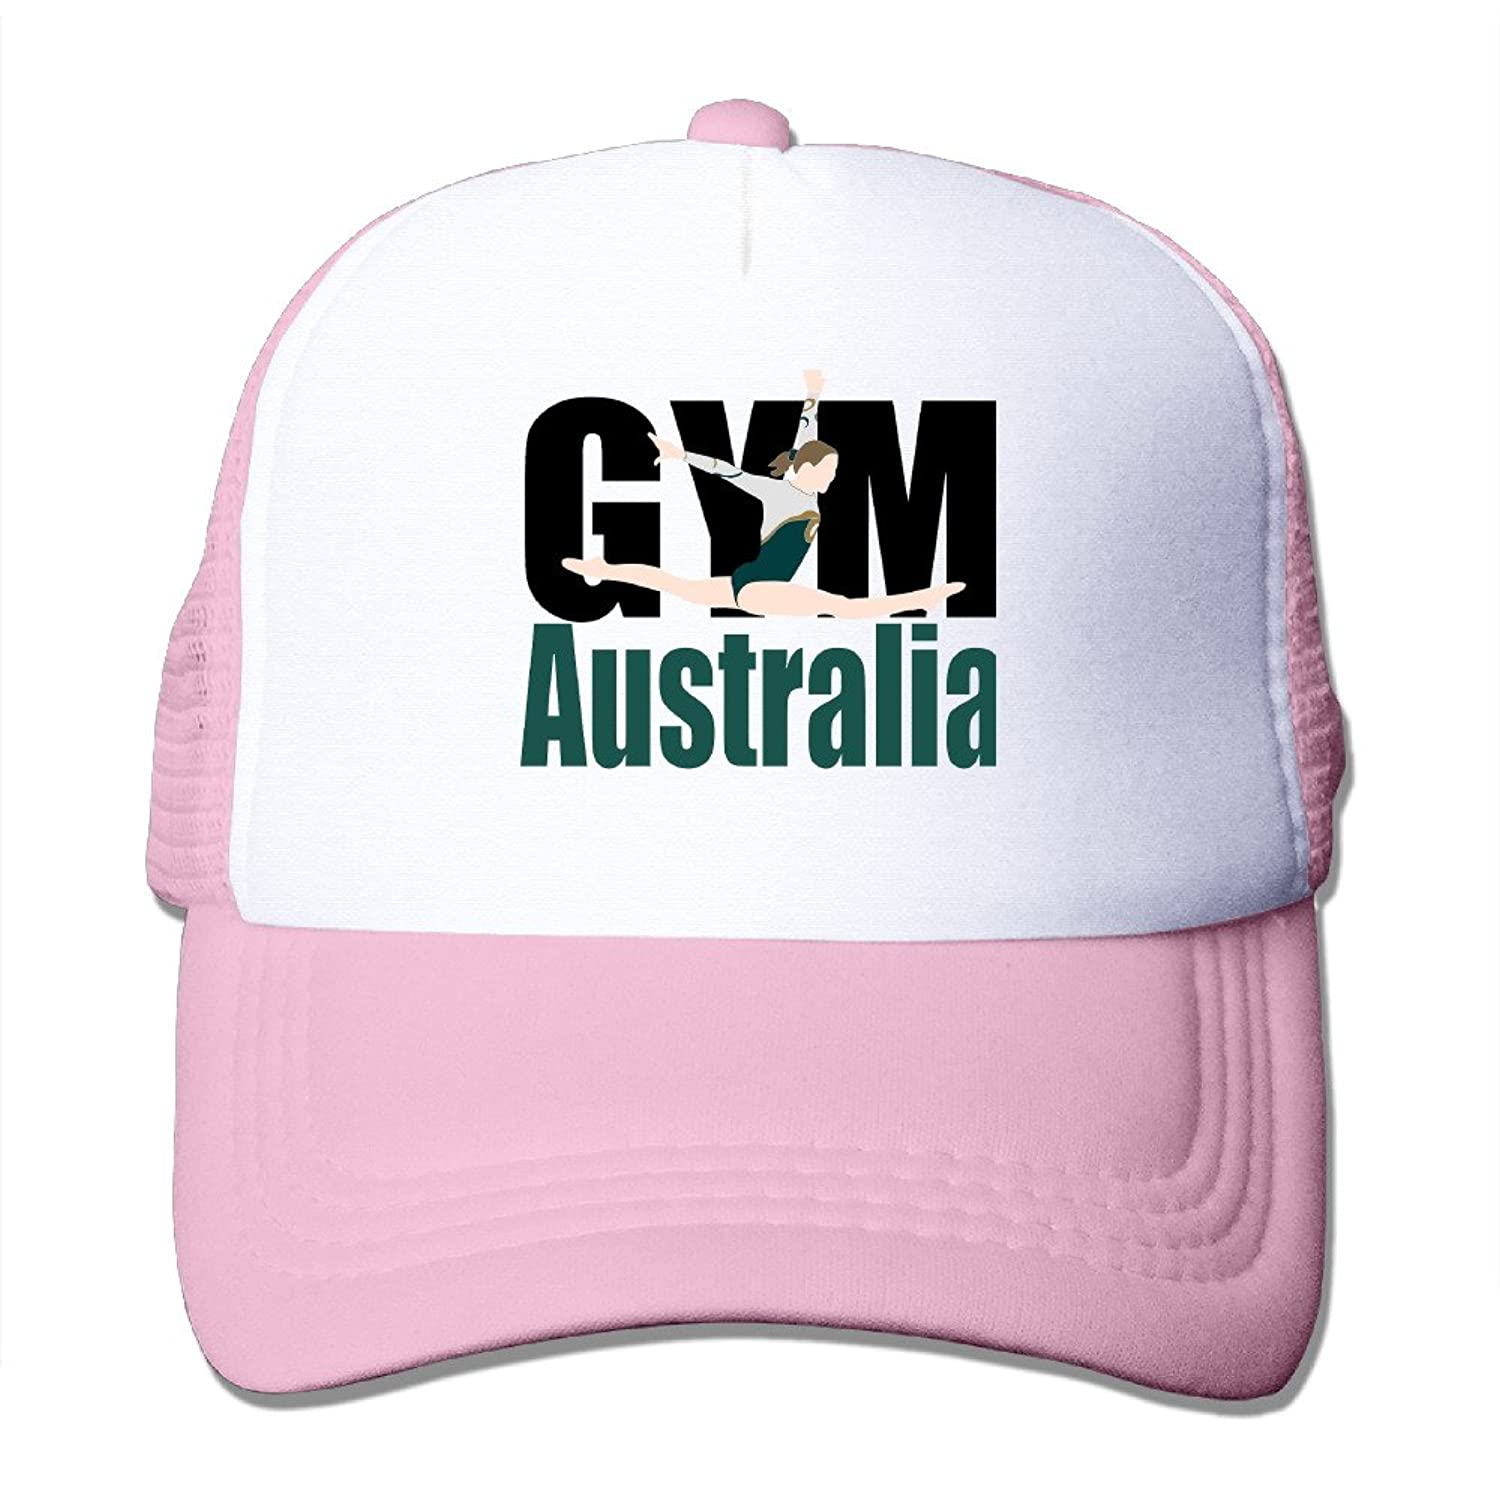 Artist GYM Australia Adult Nylon Adjustable Mesh Hat Mesh Cap Red One Size Fits Most